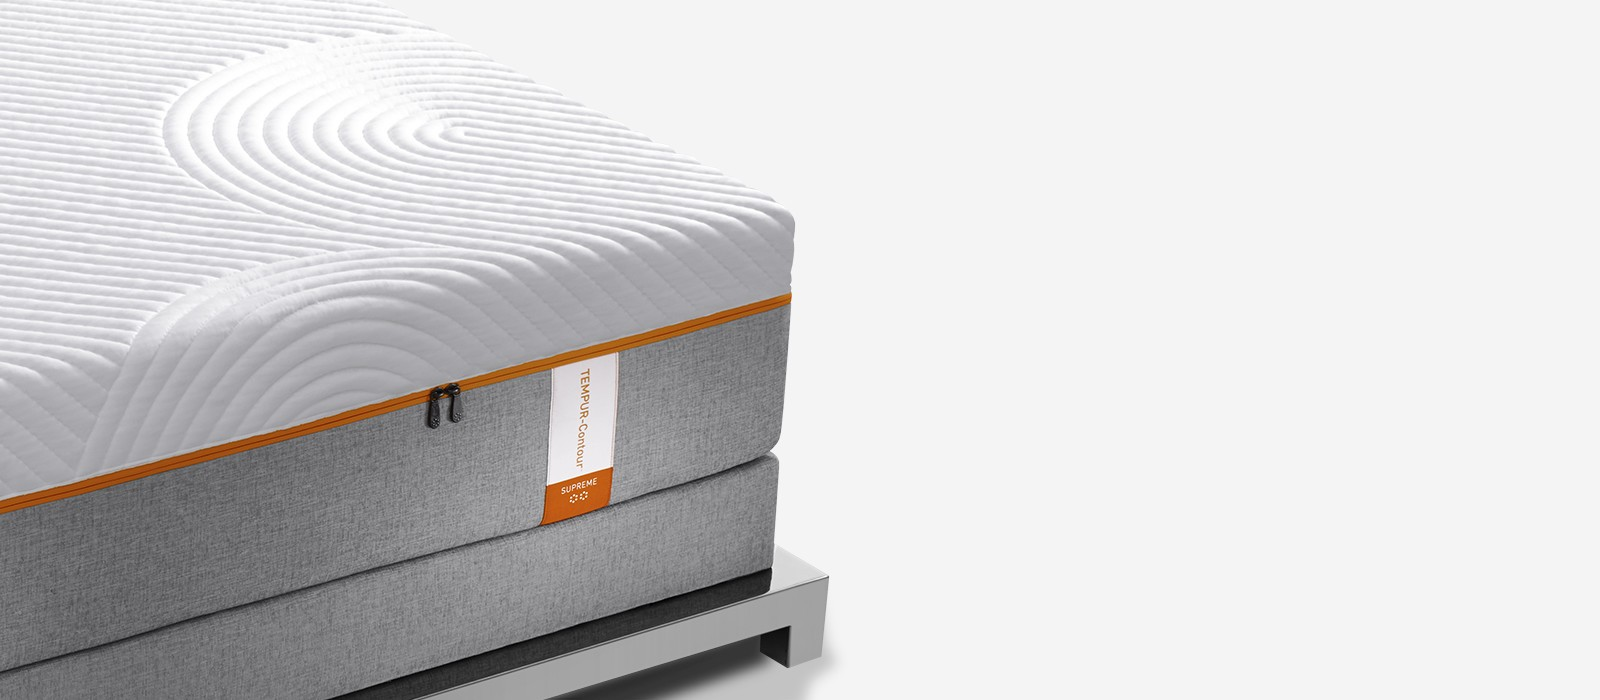 A Look Inside Memory Foam Mattresses